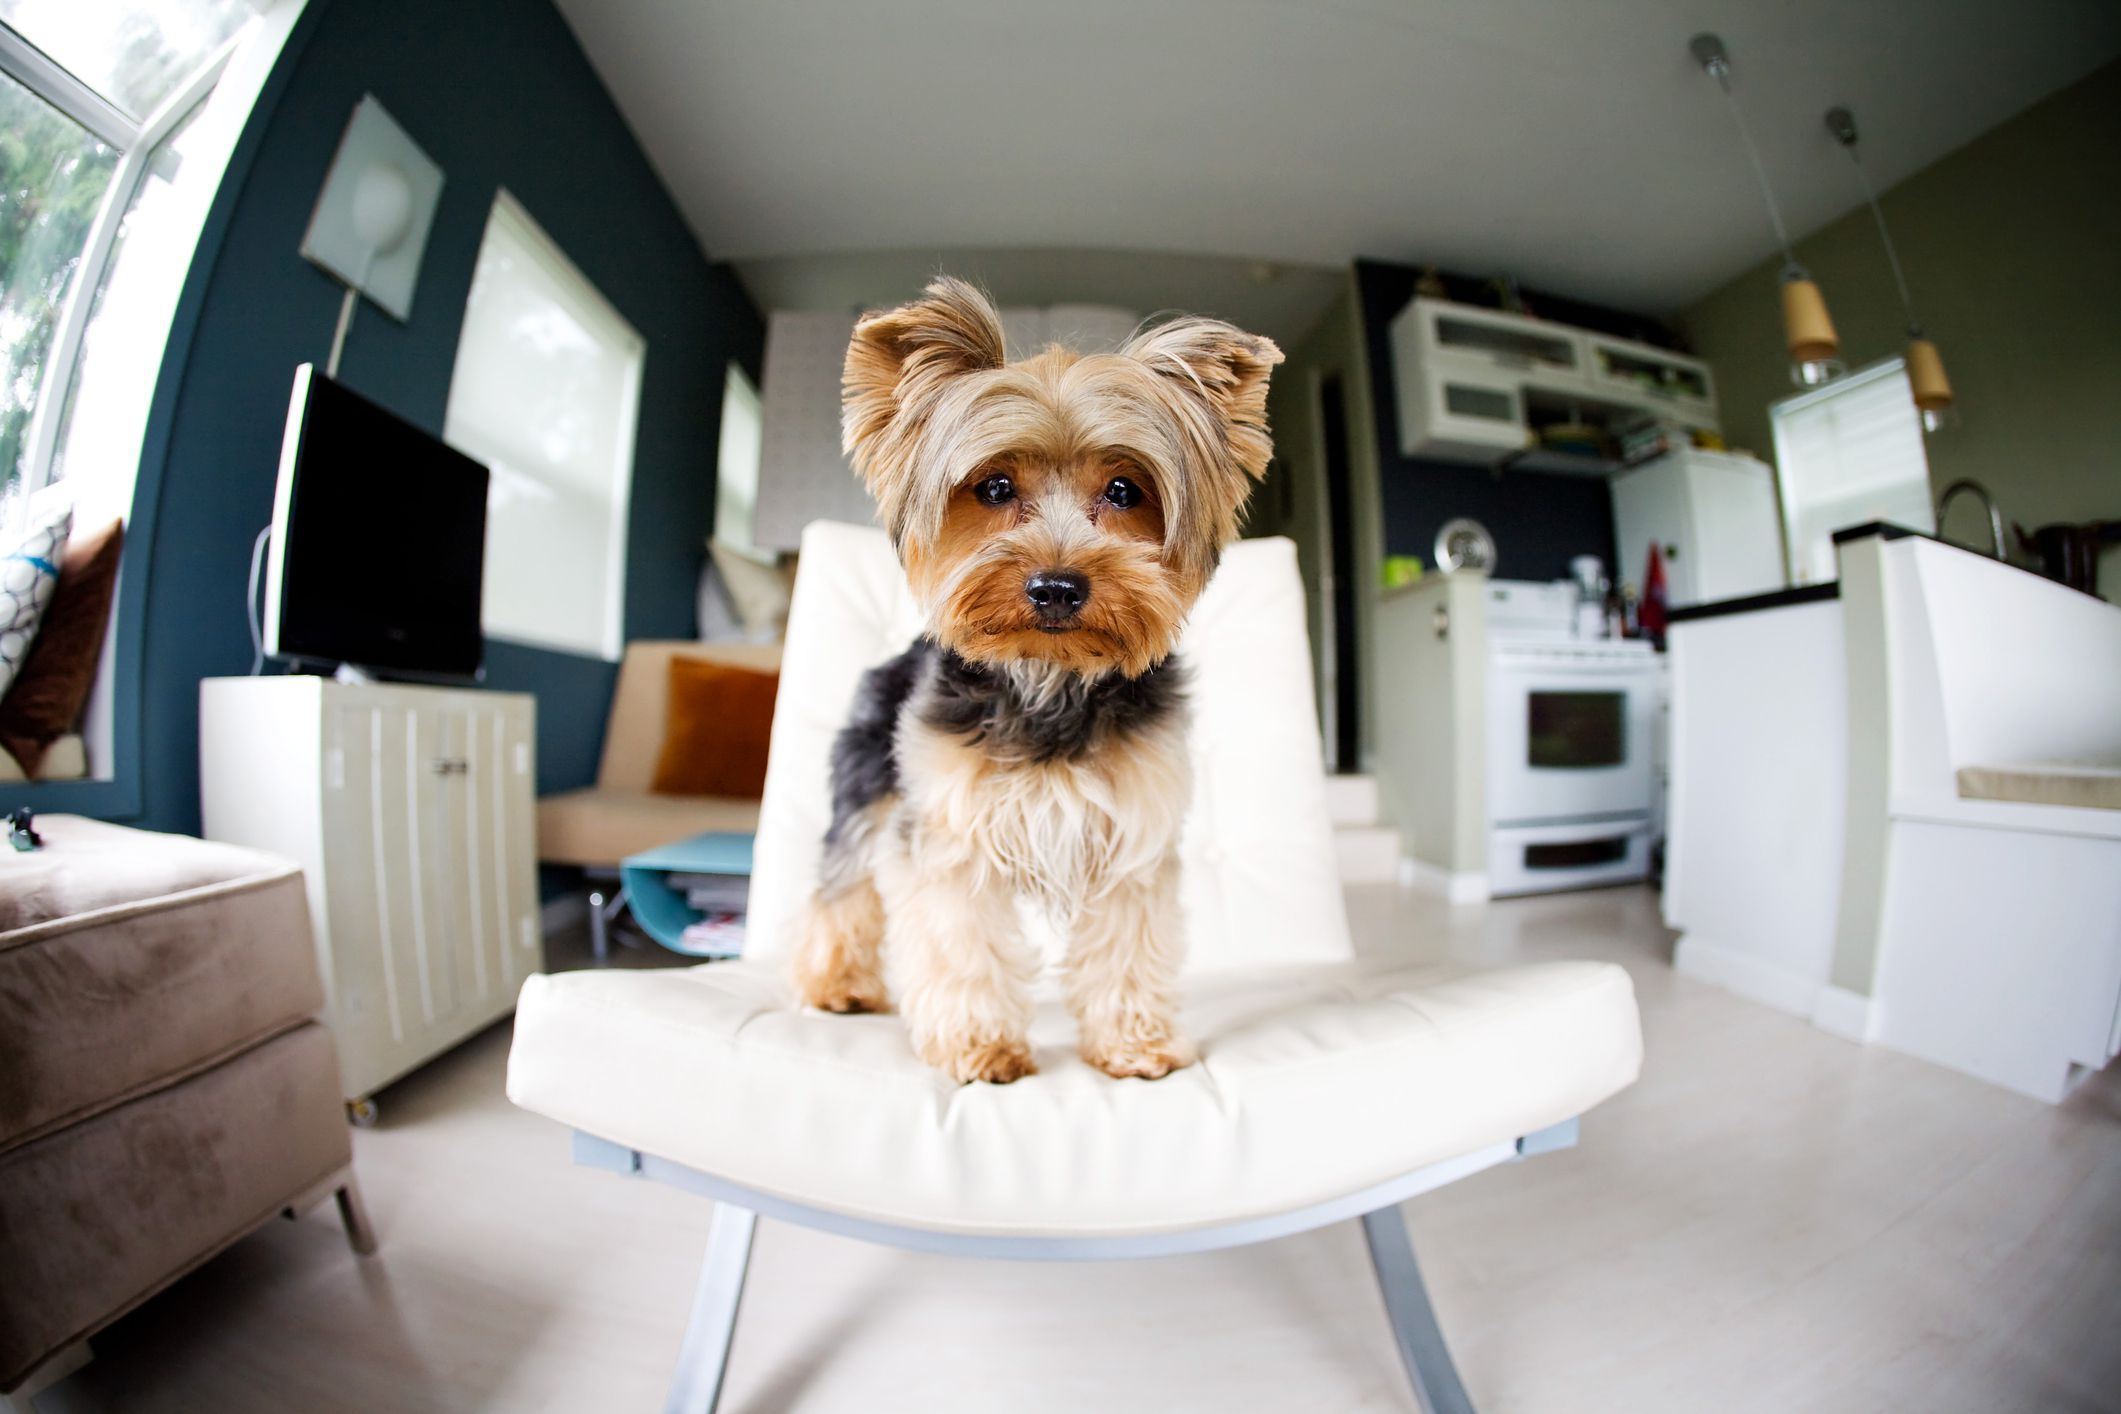 Pet friendly rentals can be successful as long as you have